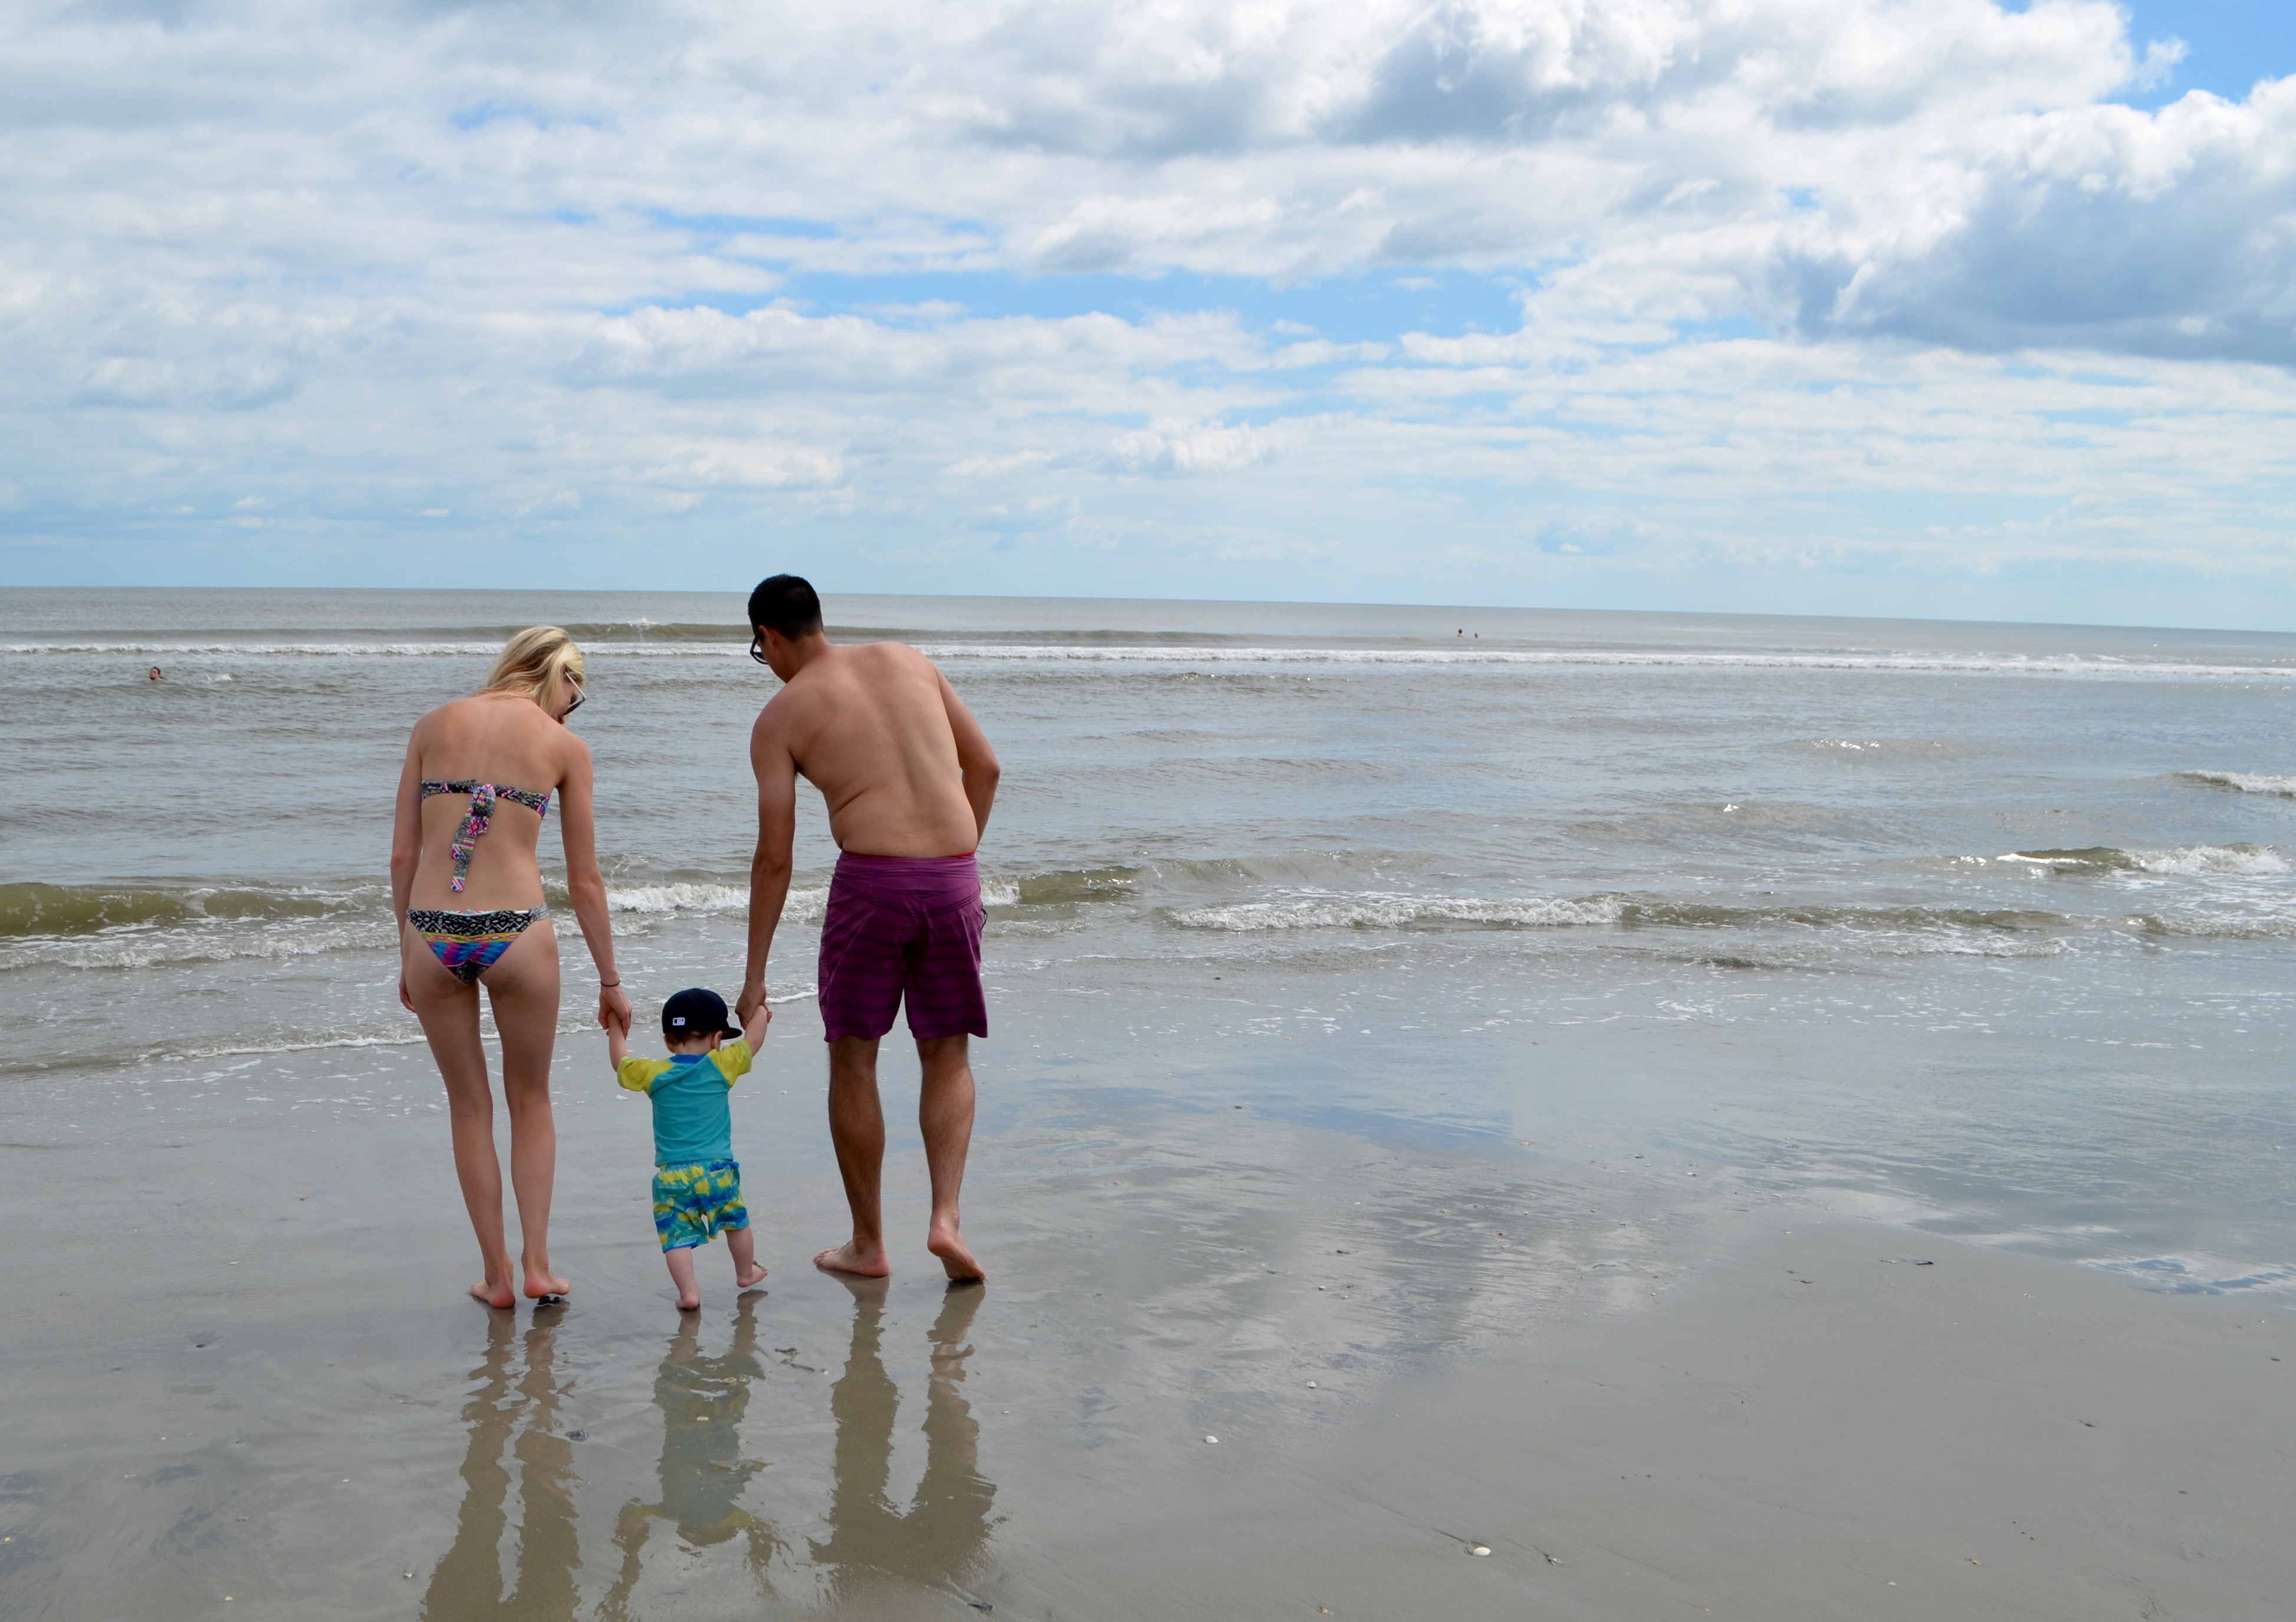 ocean isle beach online dating It depicts an alternate version of the future in which goku dies from a virus and a teenage slidegossip goku and jamai raja 28th april 2016 episode watch online kumpulan resep indonesia dalam bahasa holden beach fishing charters oak island fishing charters ocean isle thapki serial title song free downloadtrmdsf.